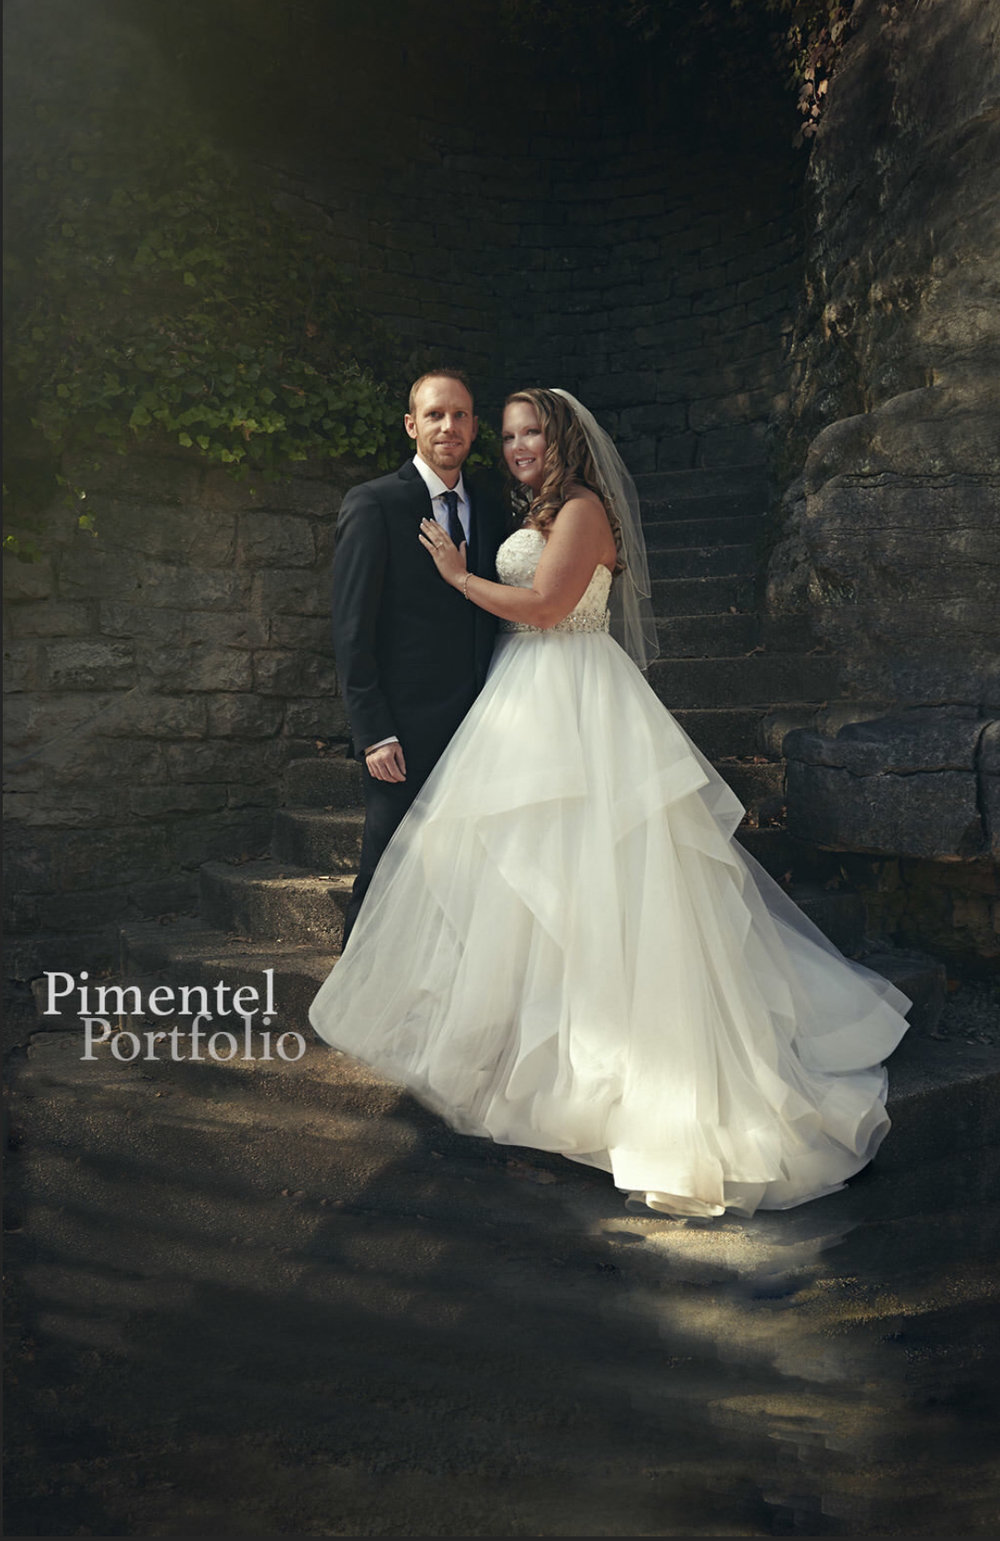 Bride and Groom Valerie and Justin pose for a portrait. Image by Pimentel Portfolio LLC